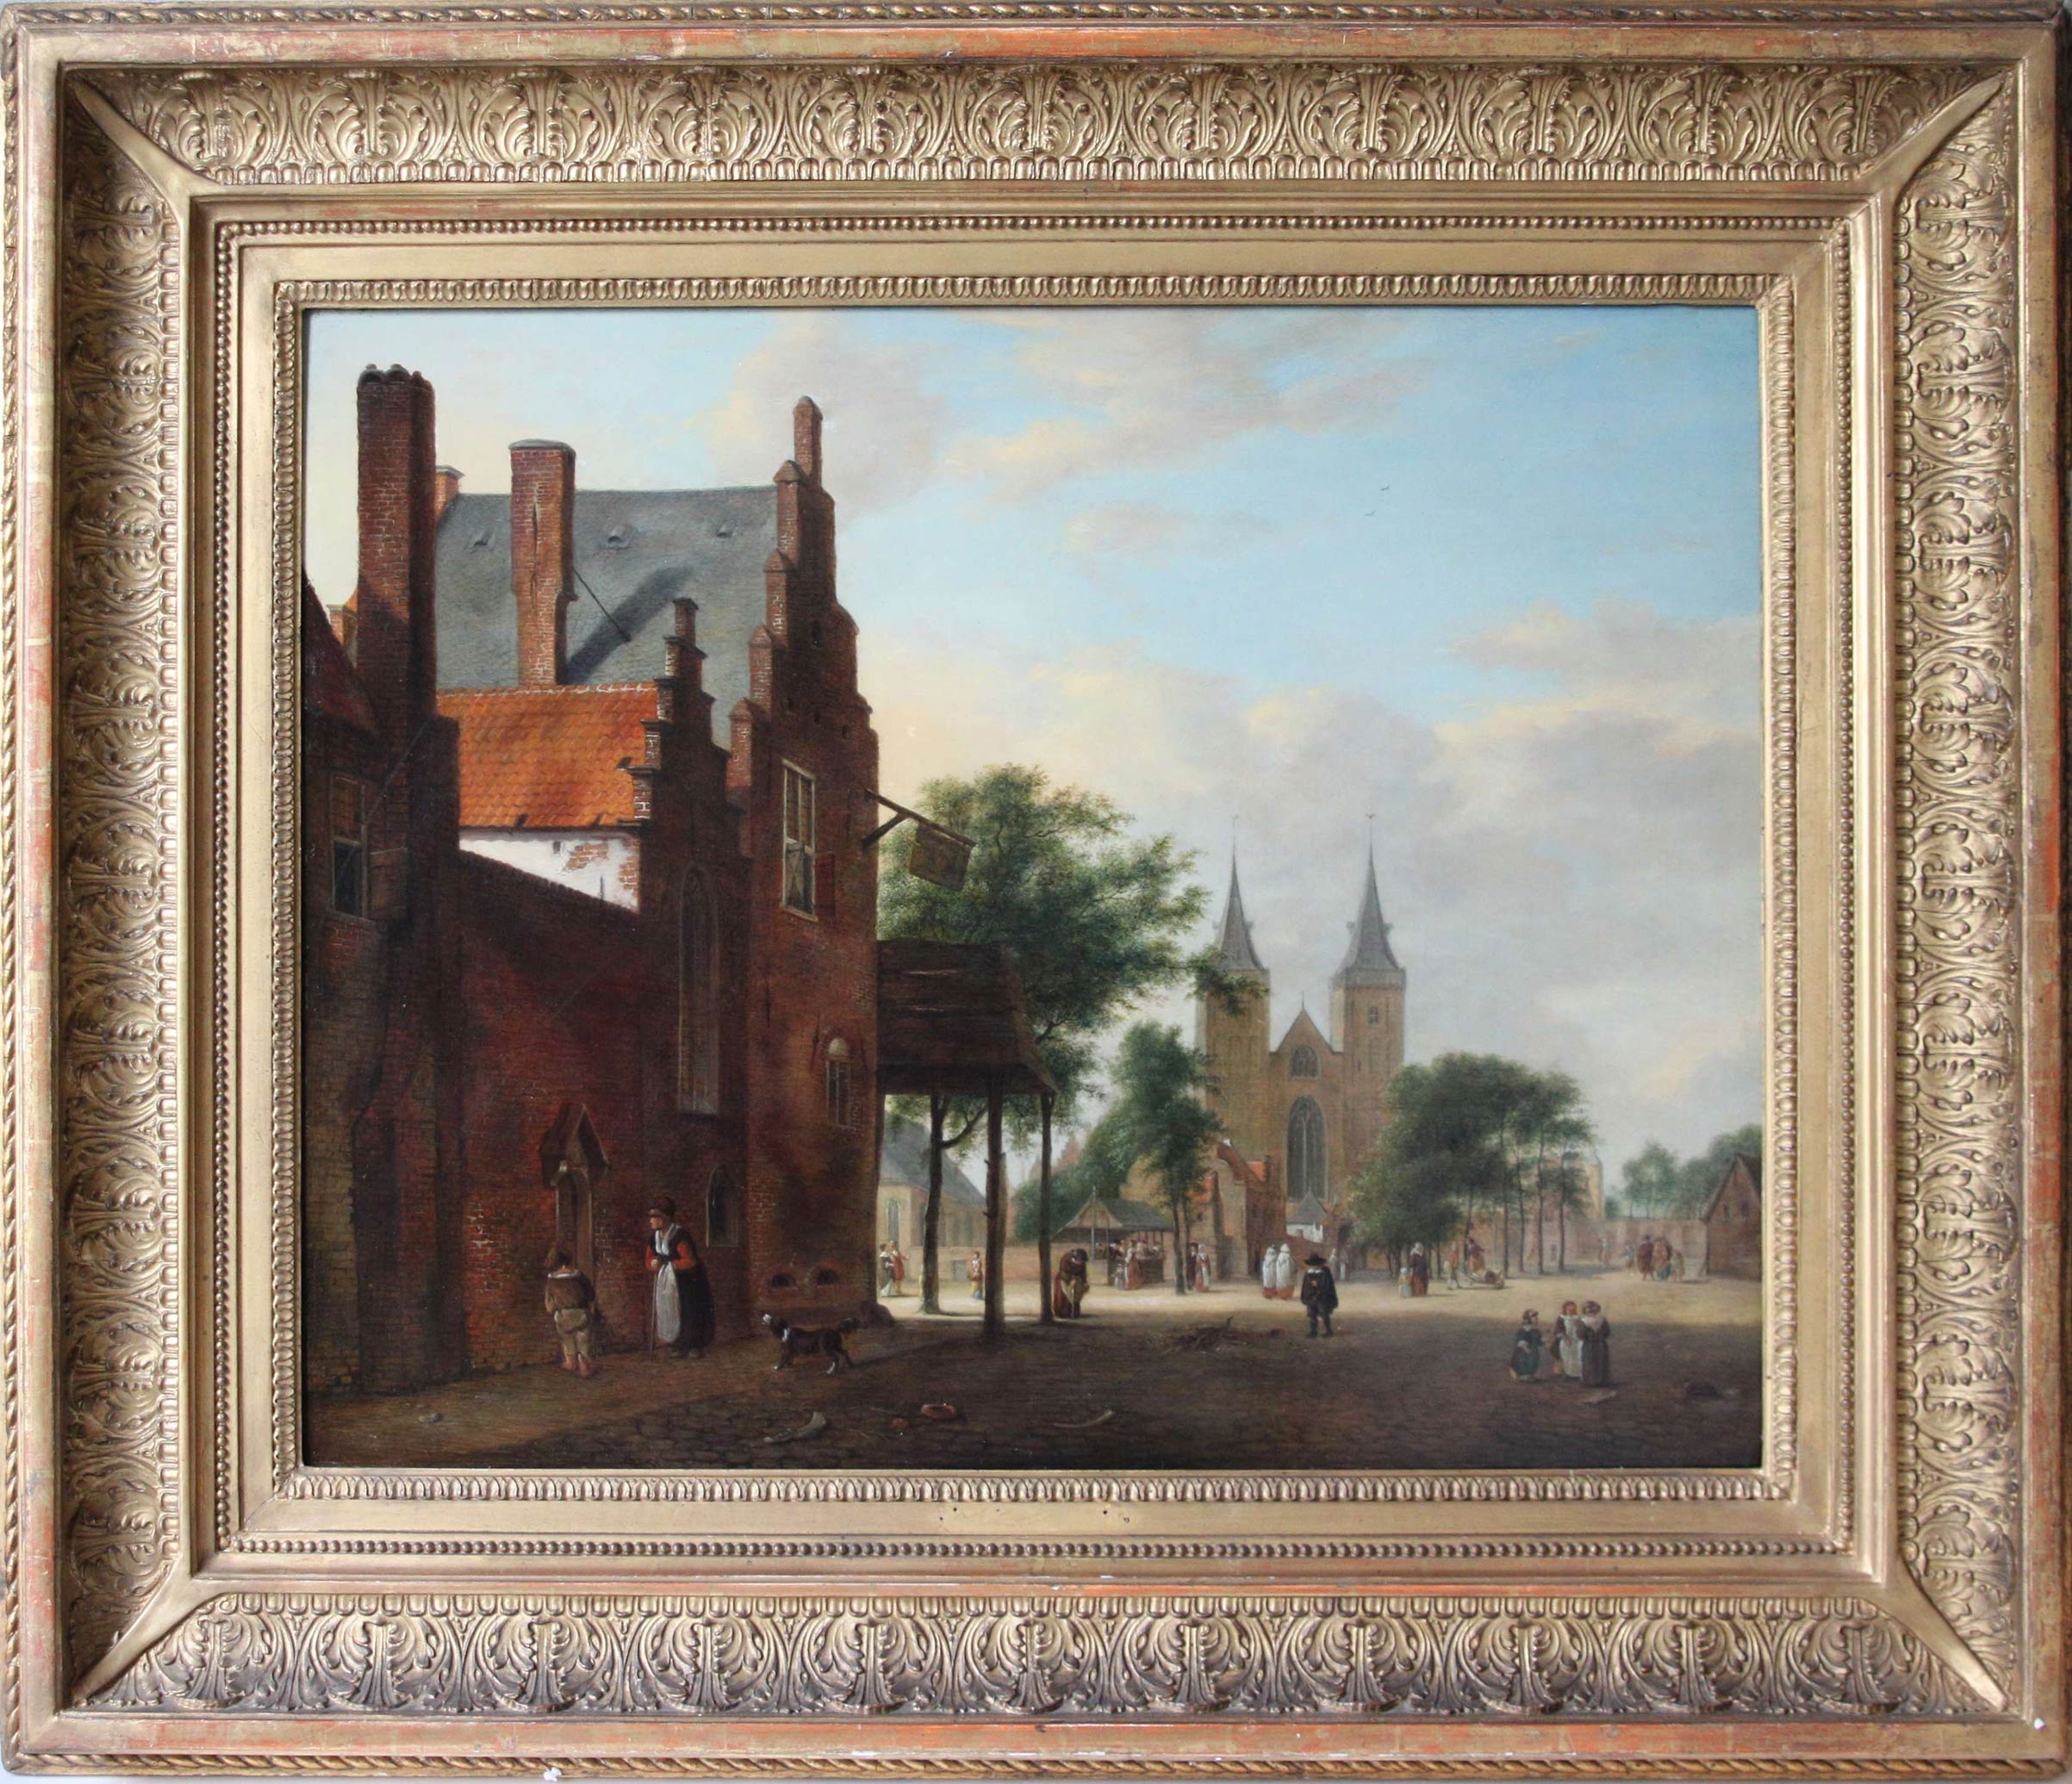 View of a Dutch Square,  believed to be a copy of a painting by the 17th-century Dutch artist Jan van der Heyden.